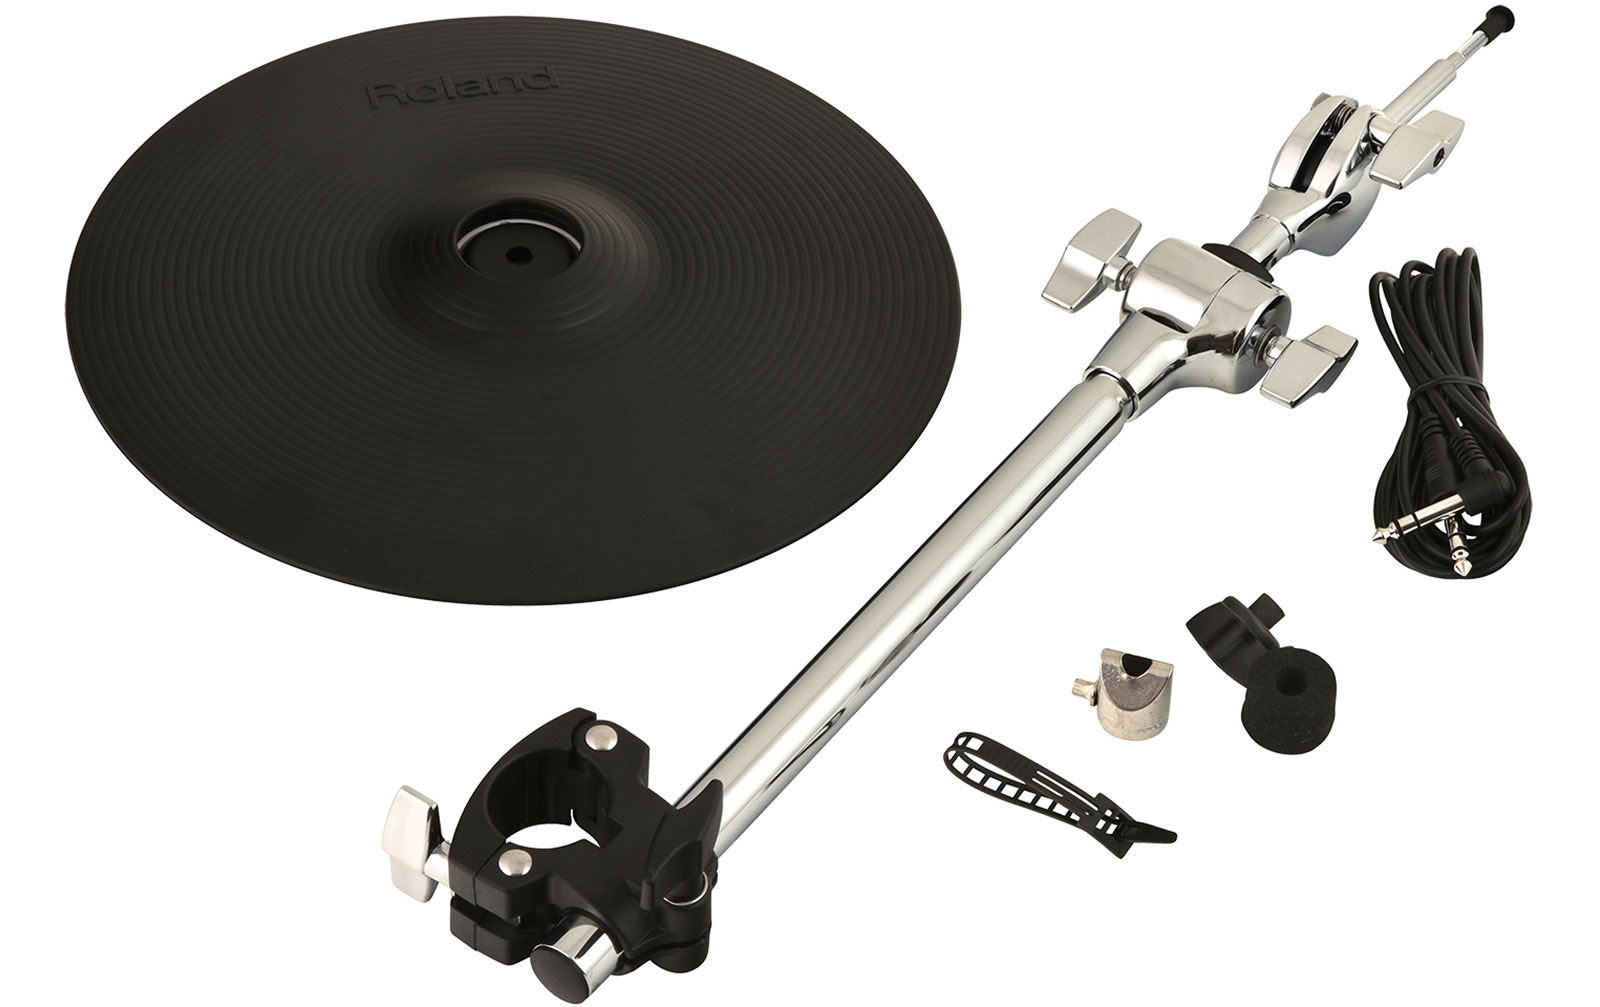 roland-cy-12c-v-cymbal-upgrade-package